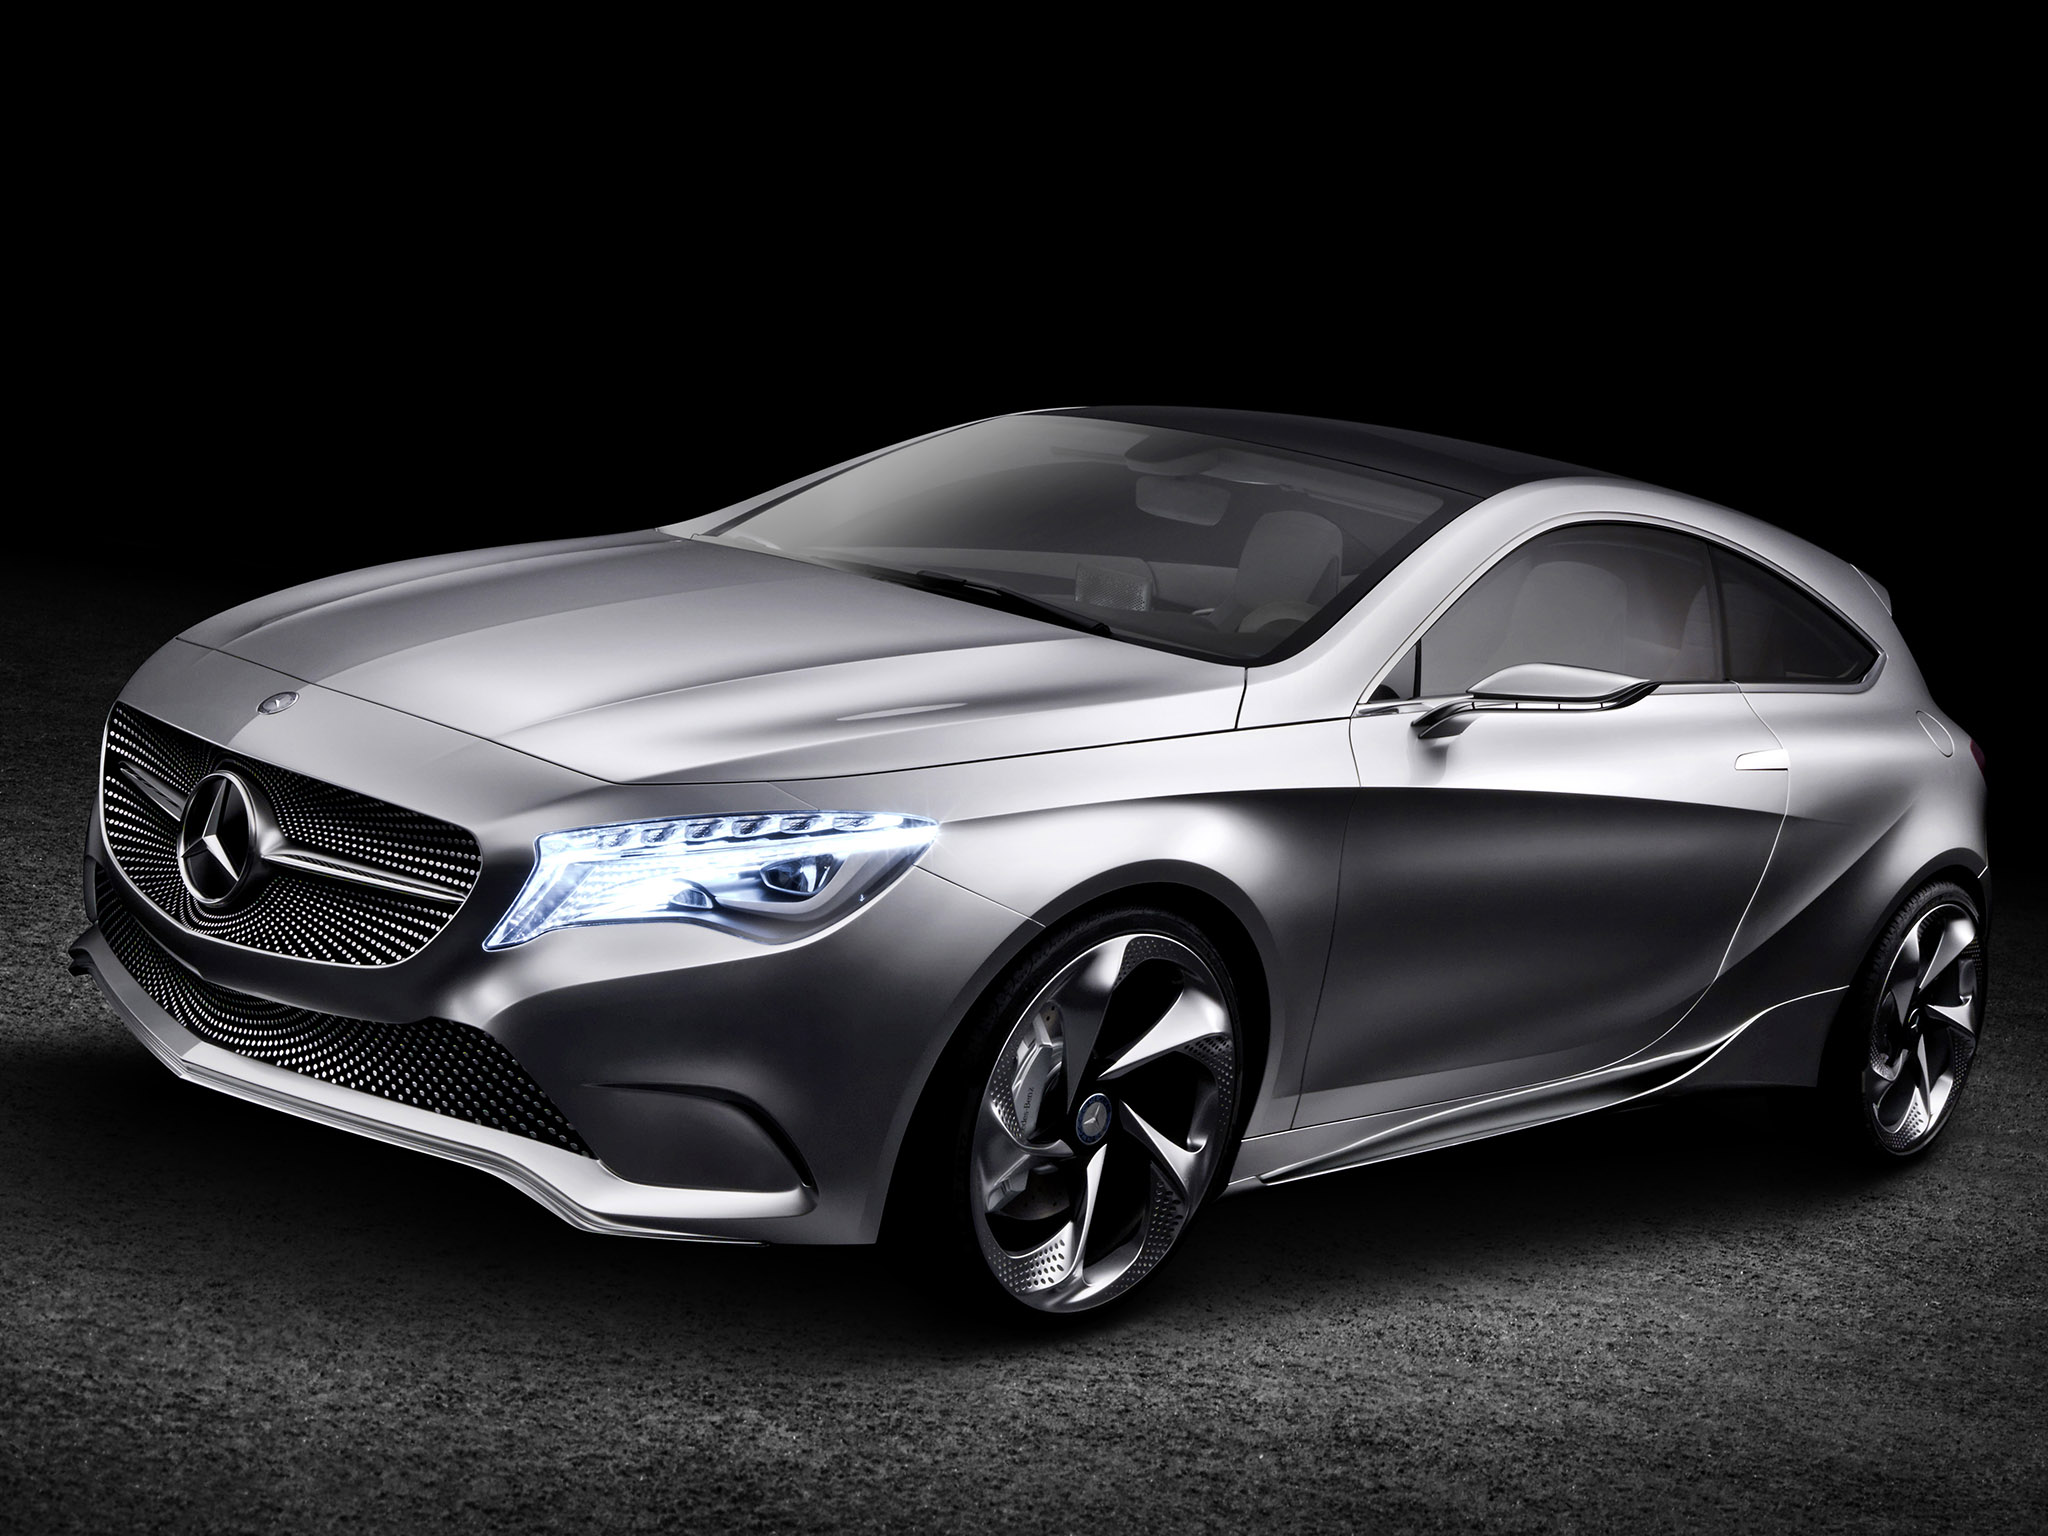 mercedes a klasse concept 2011 mercedes a klasse concept 2011 photo 19 car in pictures car. Black Bedroom Furniture Sets. Home Design Ideas